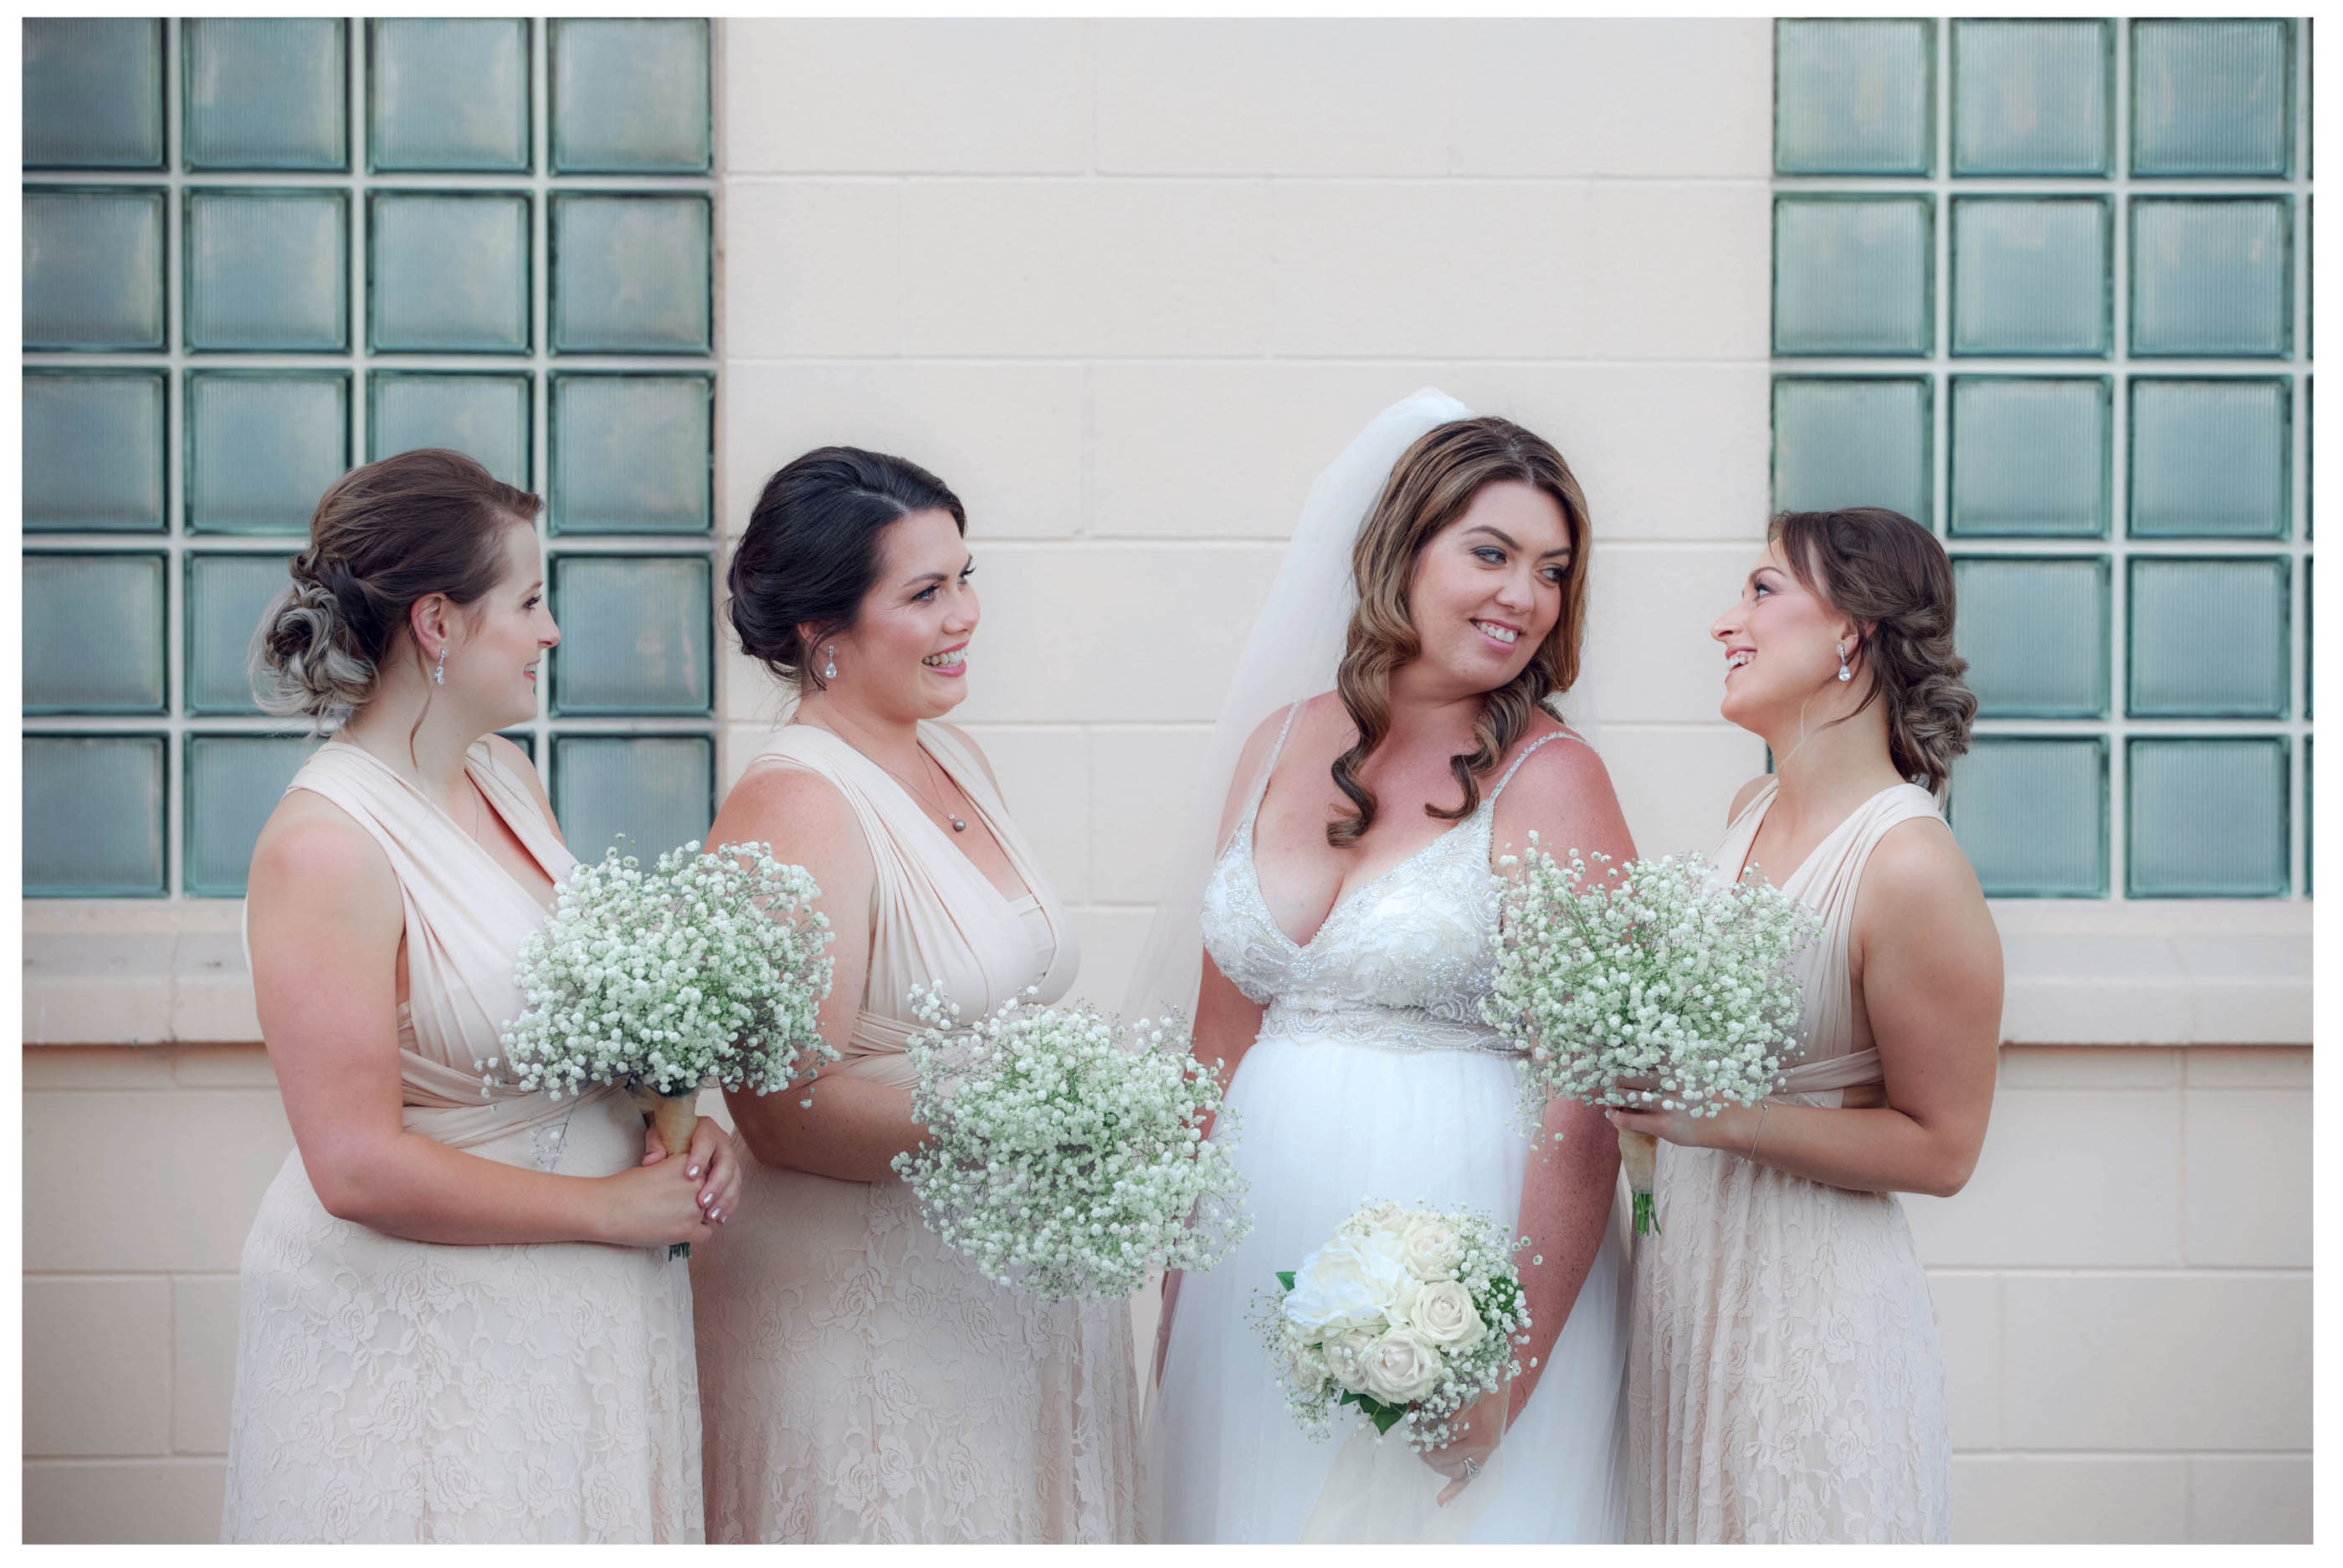 Bride and bridesmaids pose infromt of wall with glass block windows